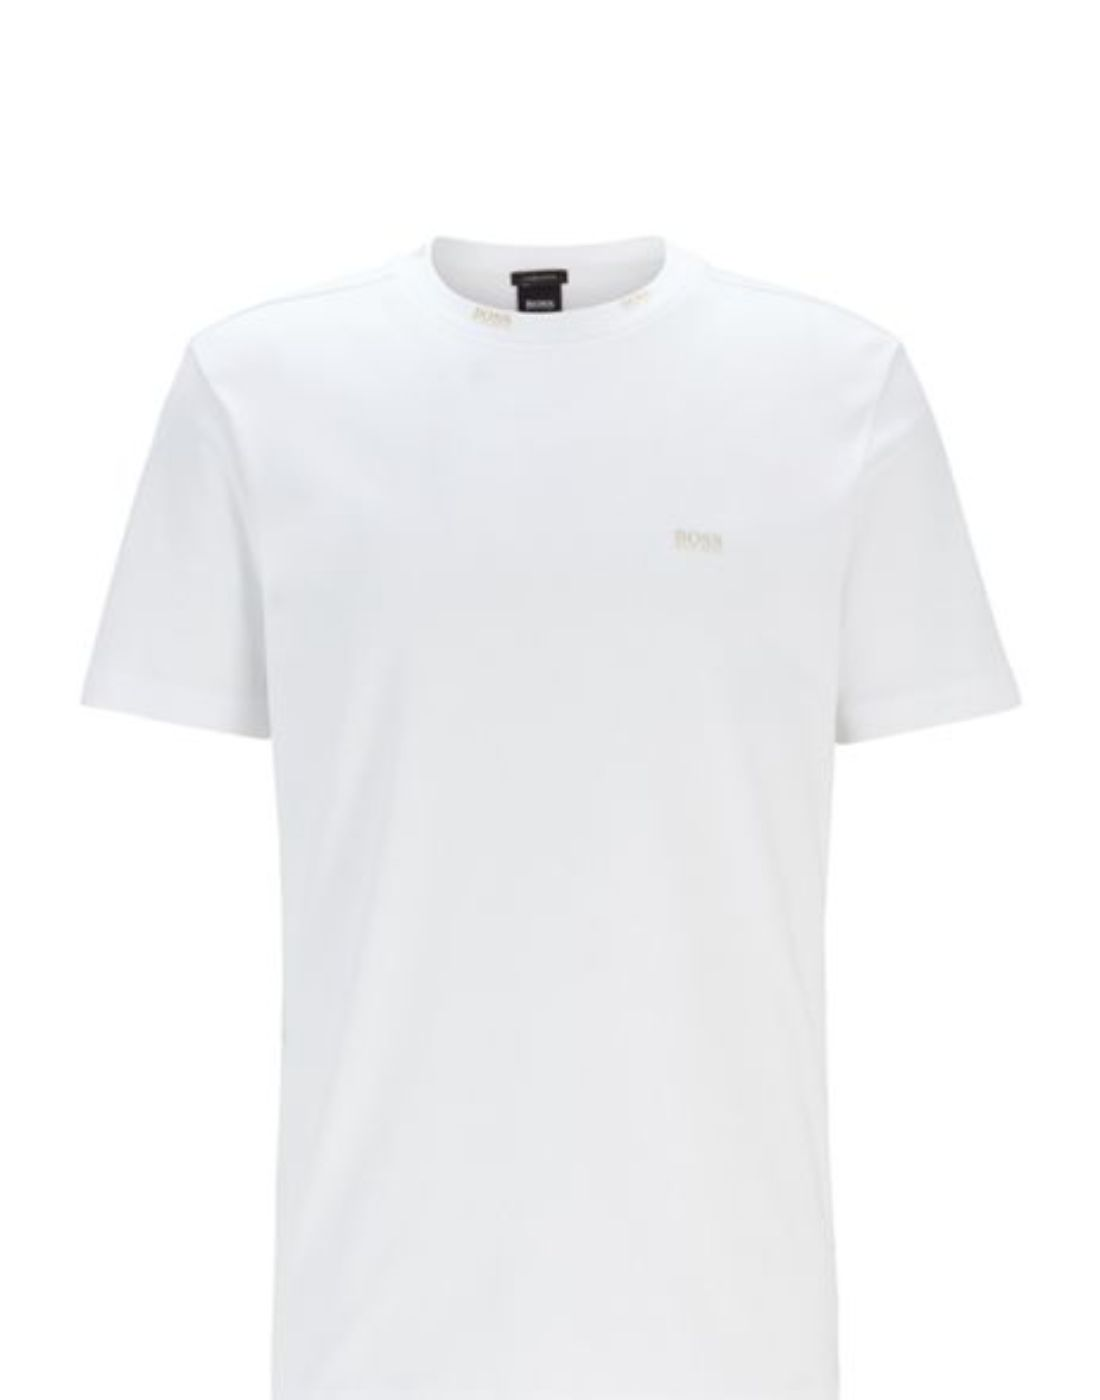 hugo boss white t shirt